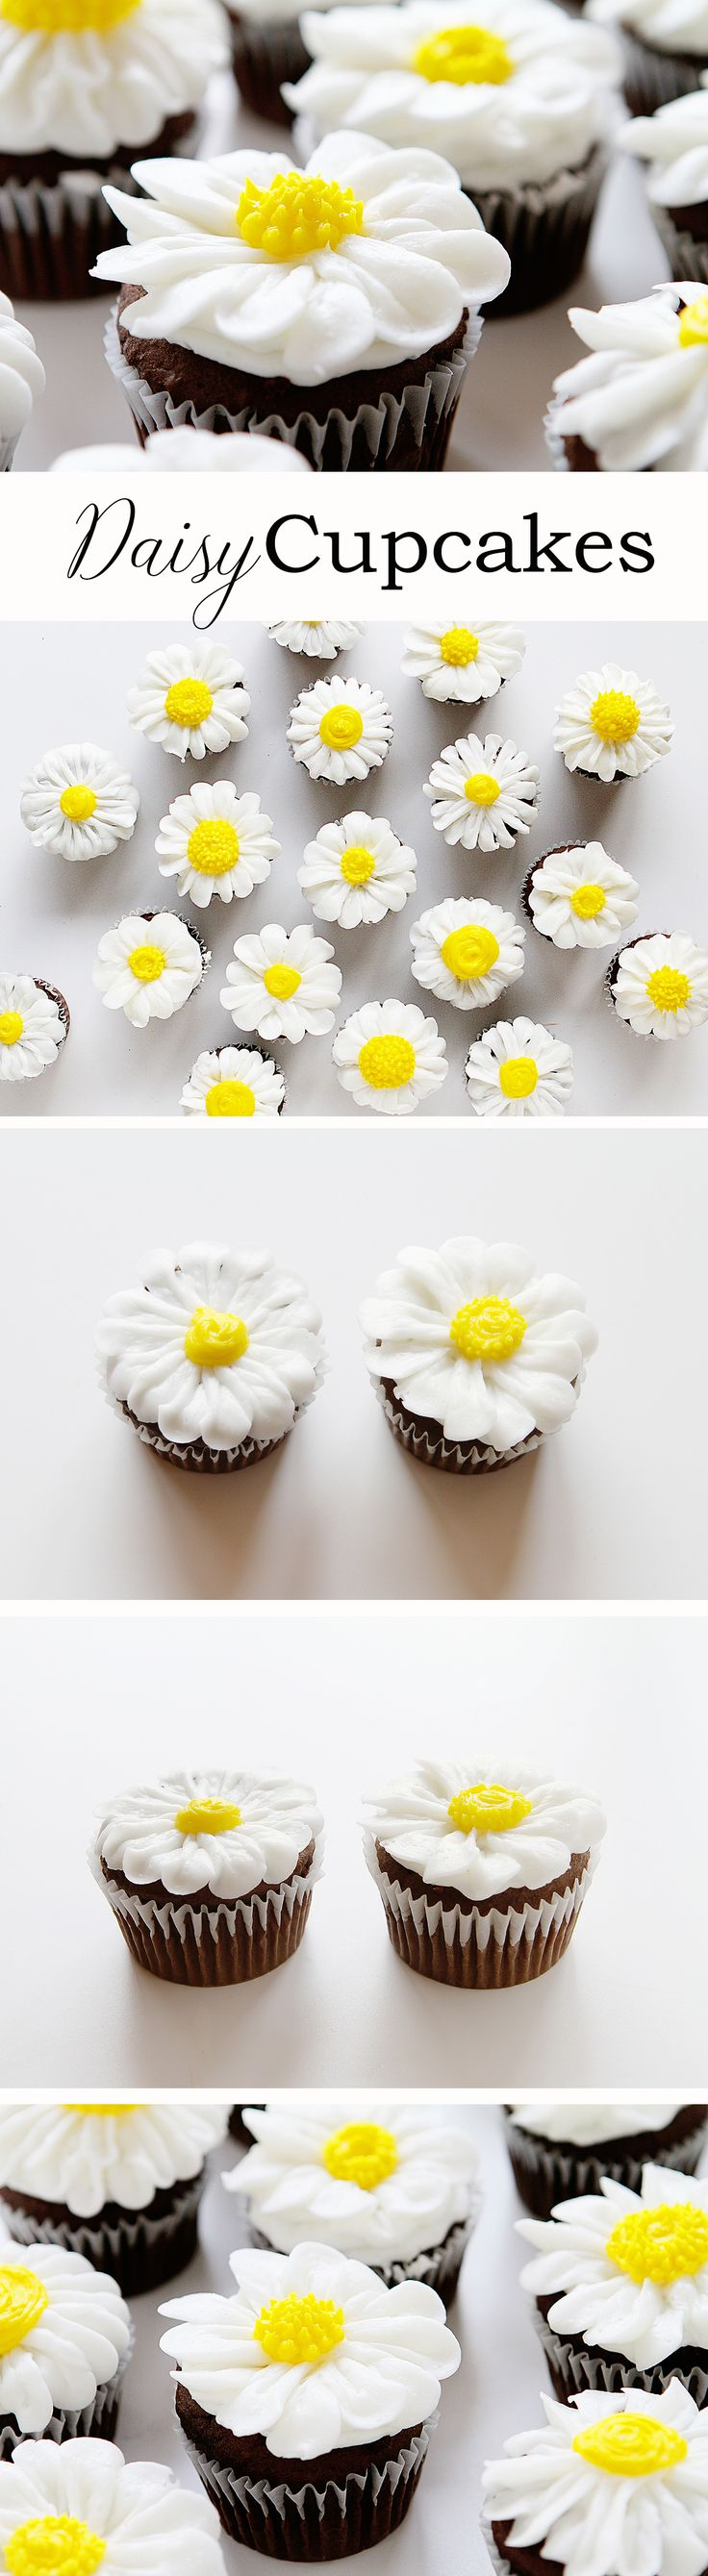 Genius tips and tricks help to make this the EASIEST cupcake ever!